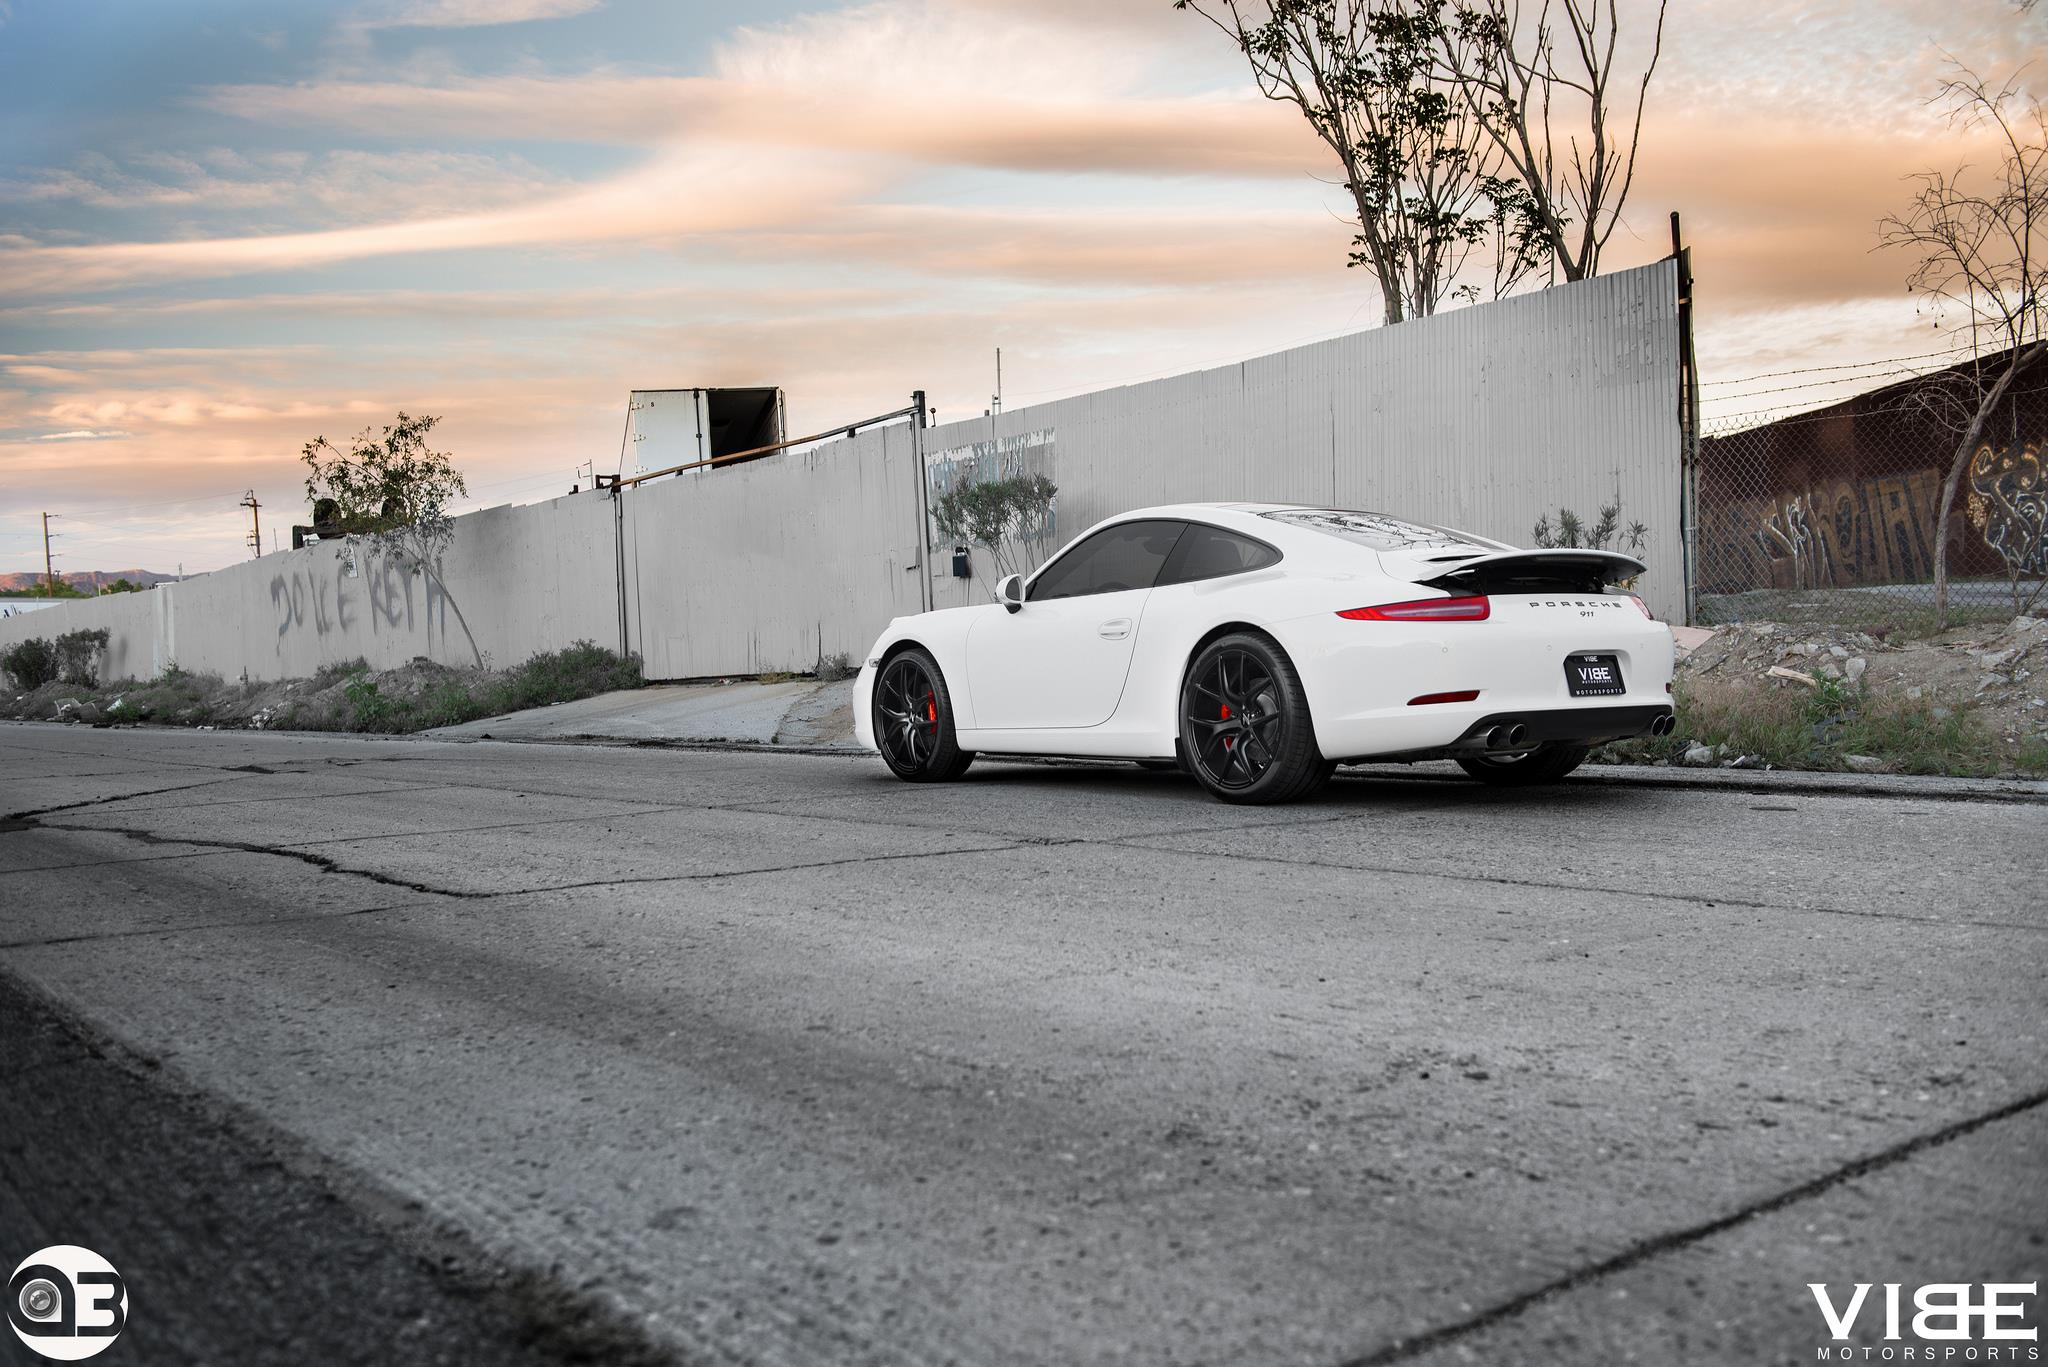 Porsche - 911 - 2014 - Wheels & Tires